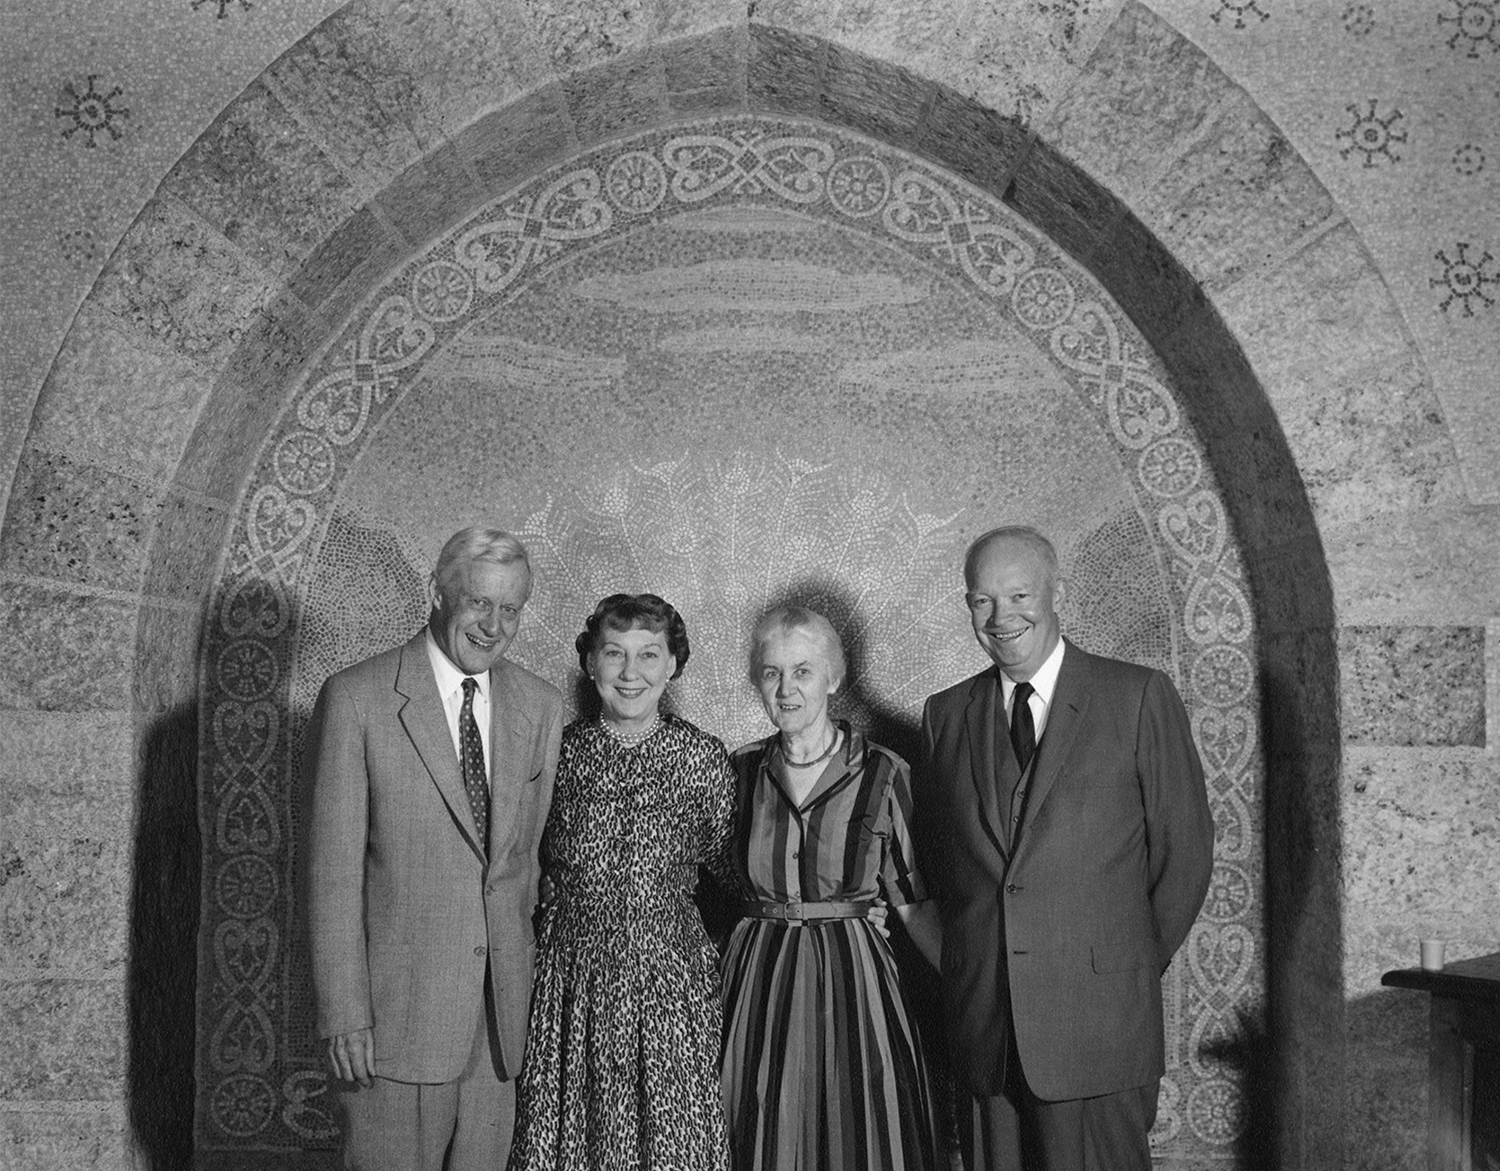 Figure 7: Raymond and Mildred posing with the Eisenhowers at Glencairn, 1961.